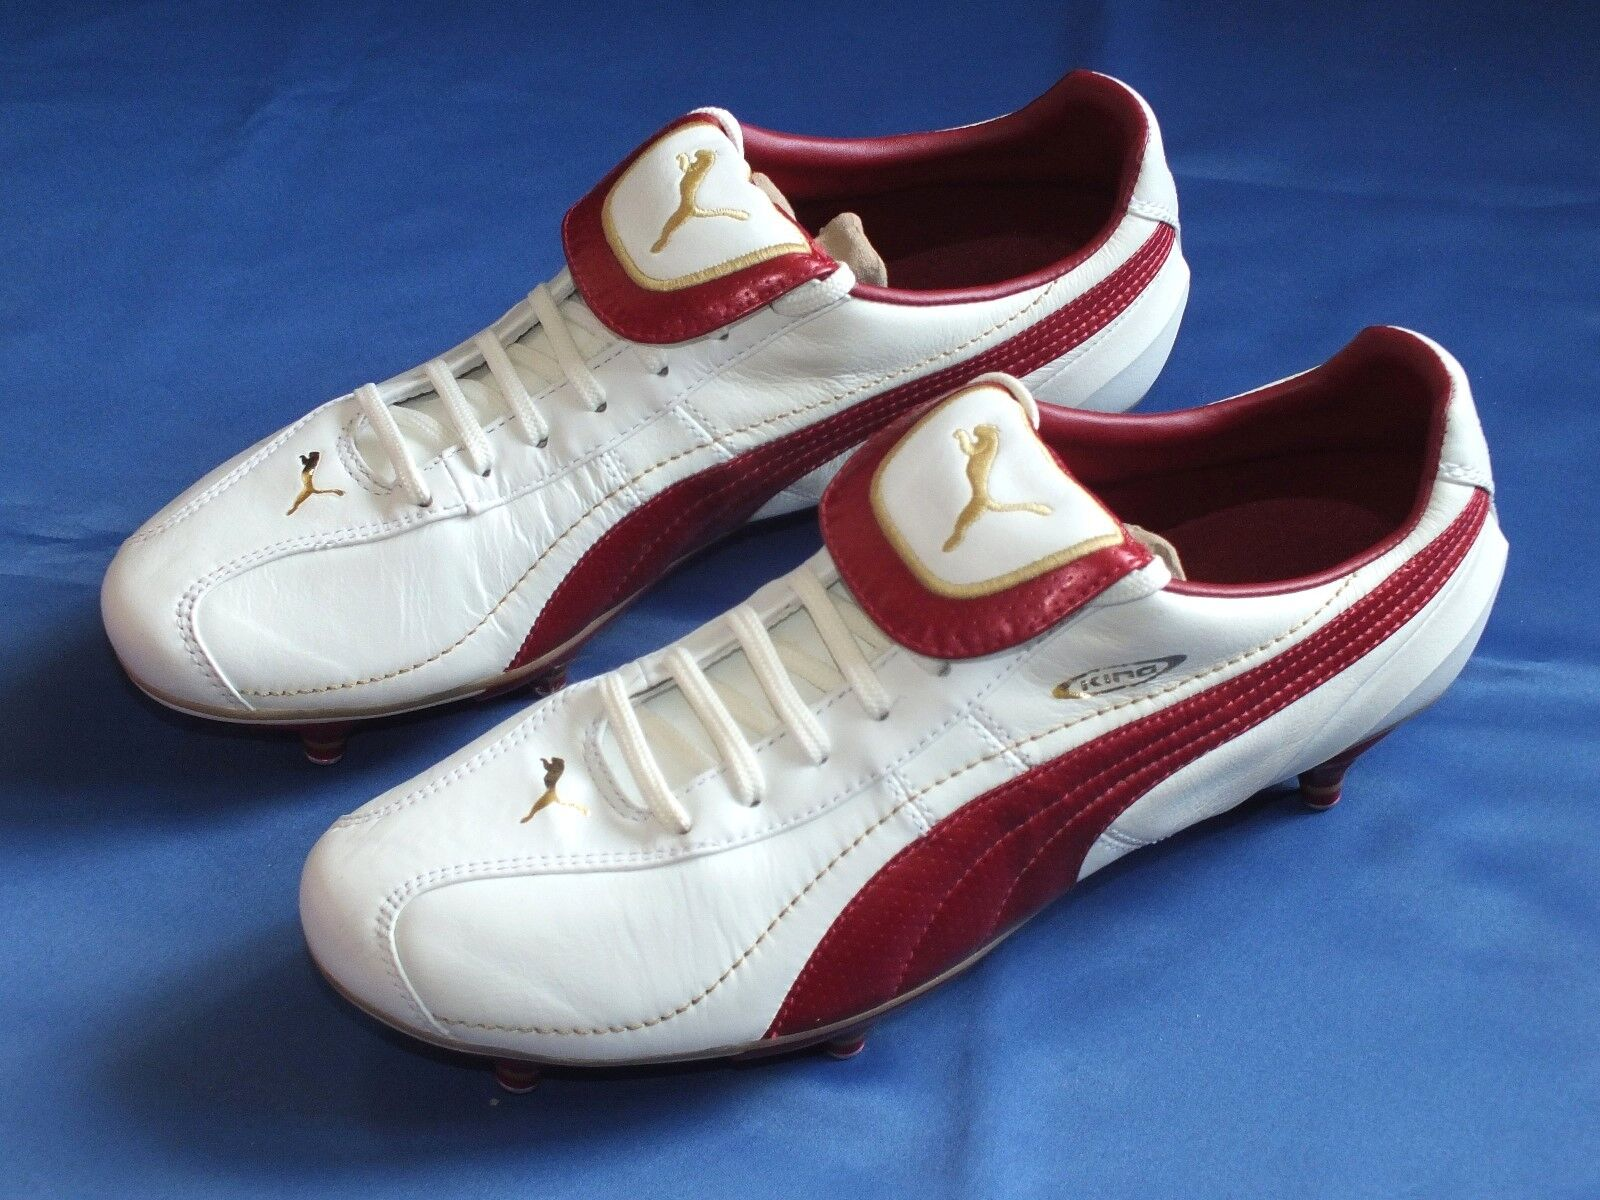 New Puma Retro Soft Ground Grass Weiß ROT & & & Gold Leder Football Stiefel UK 9 28f146